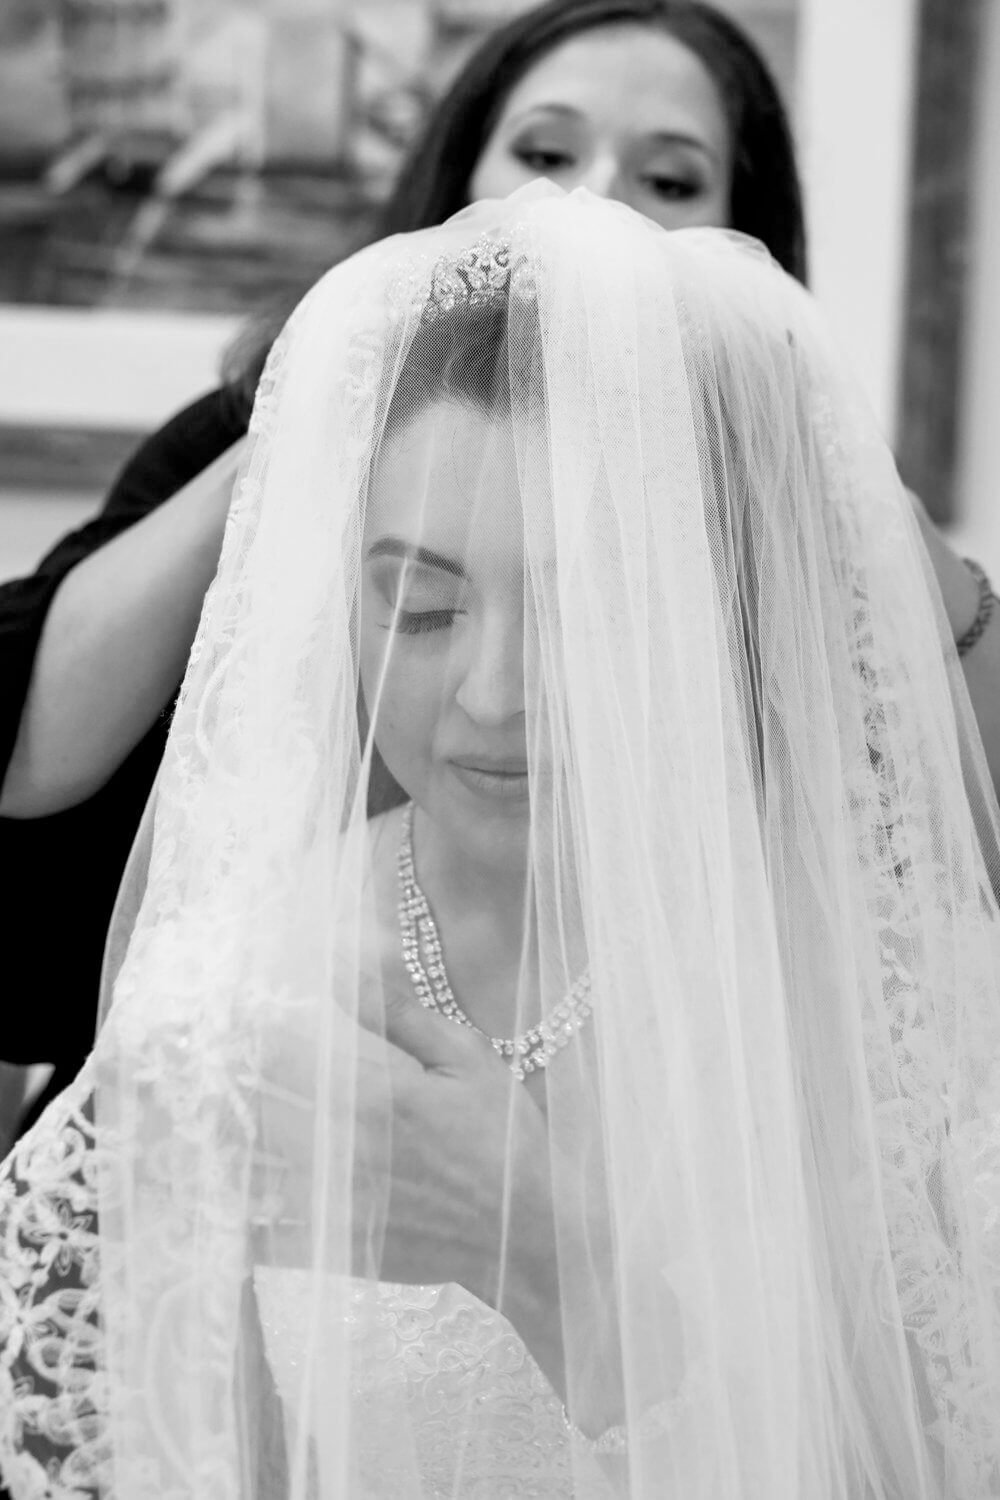 Black and white wedding photography of a bride's face shown through a veil in Maine